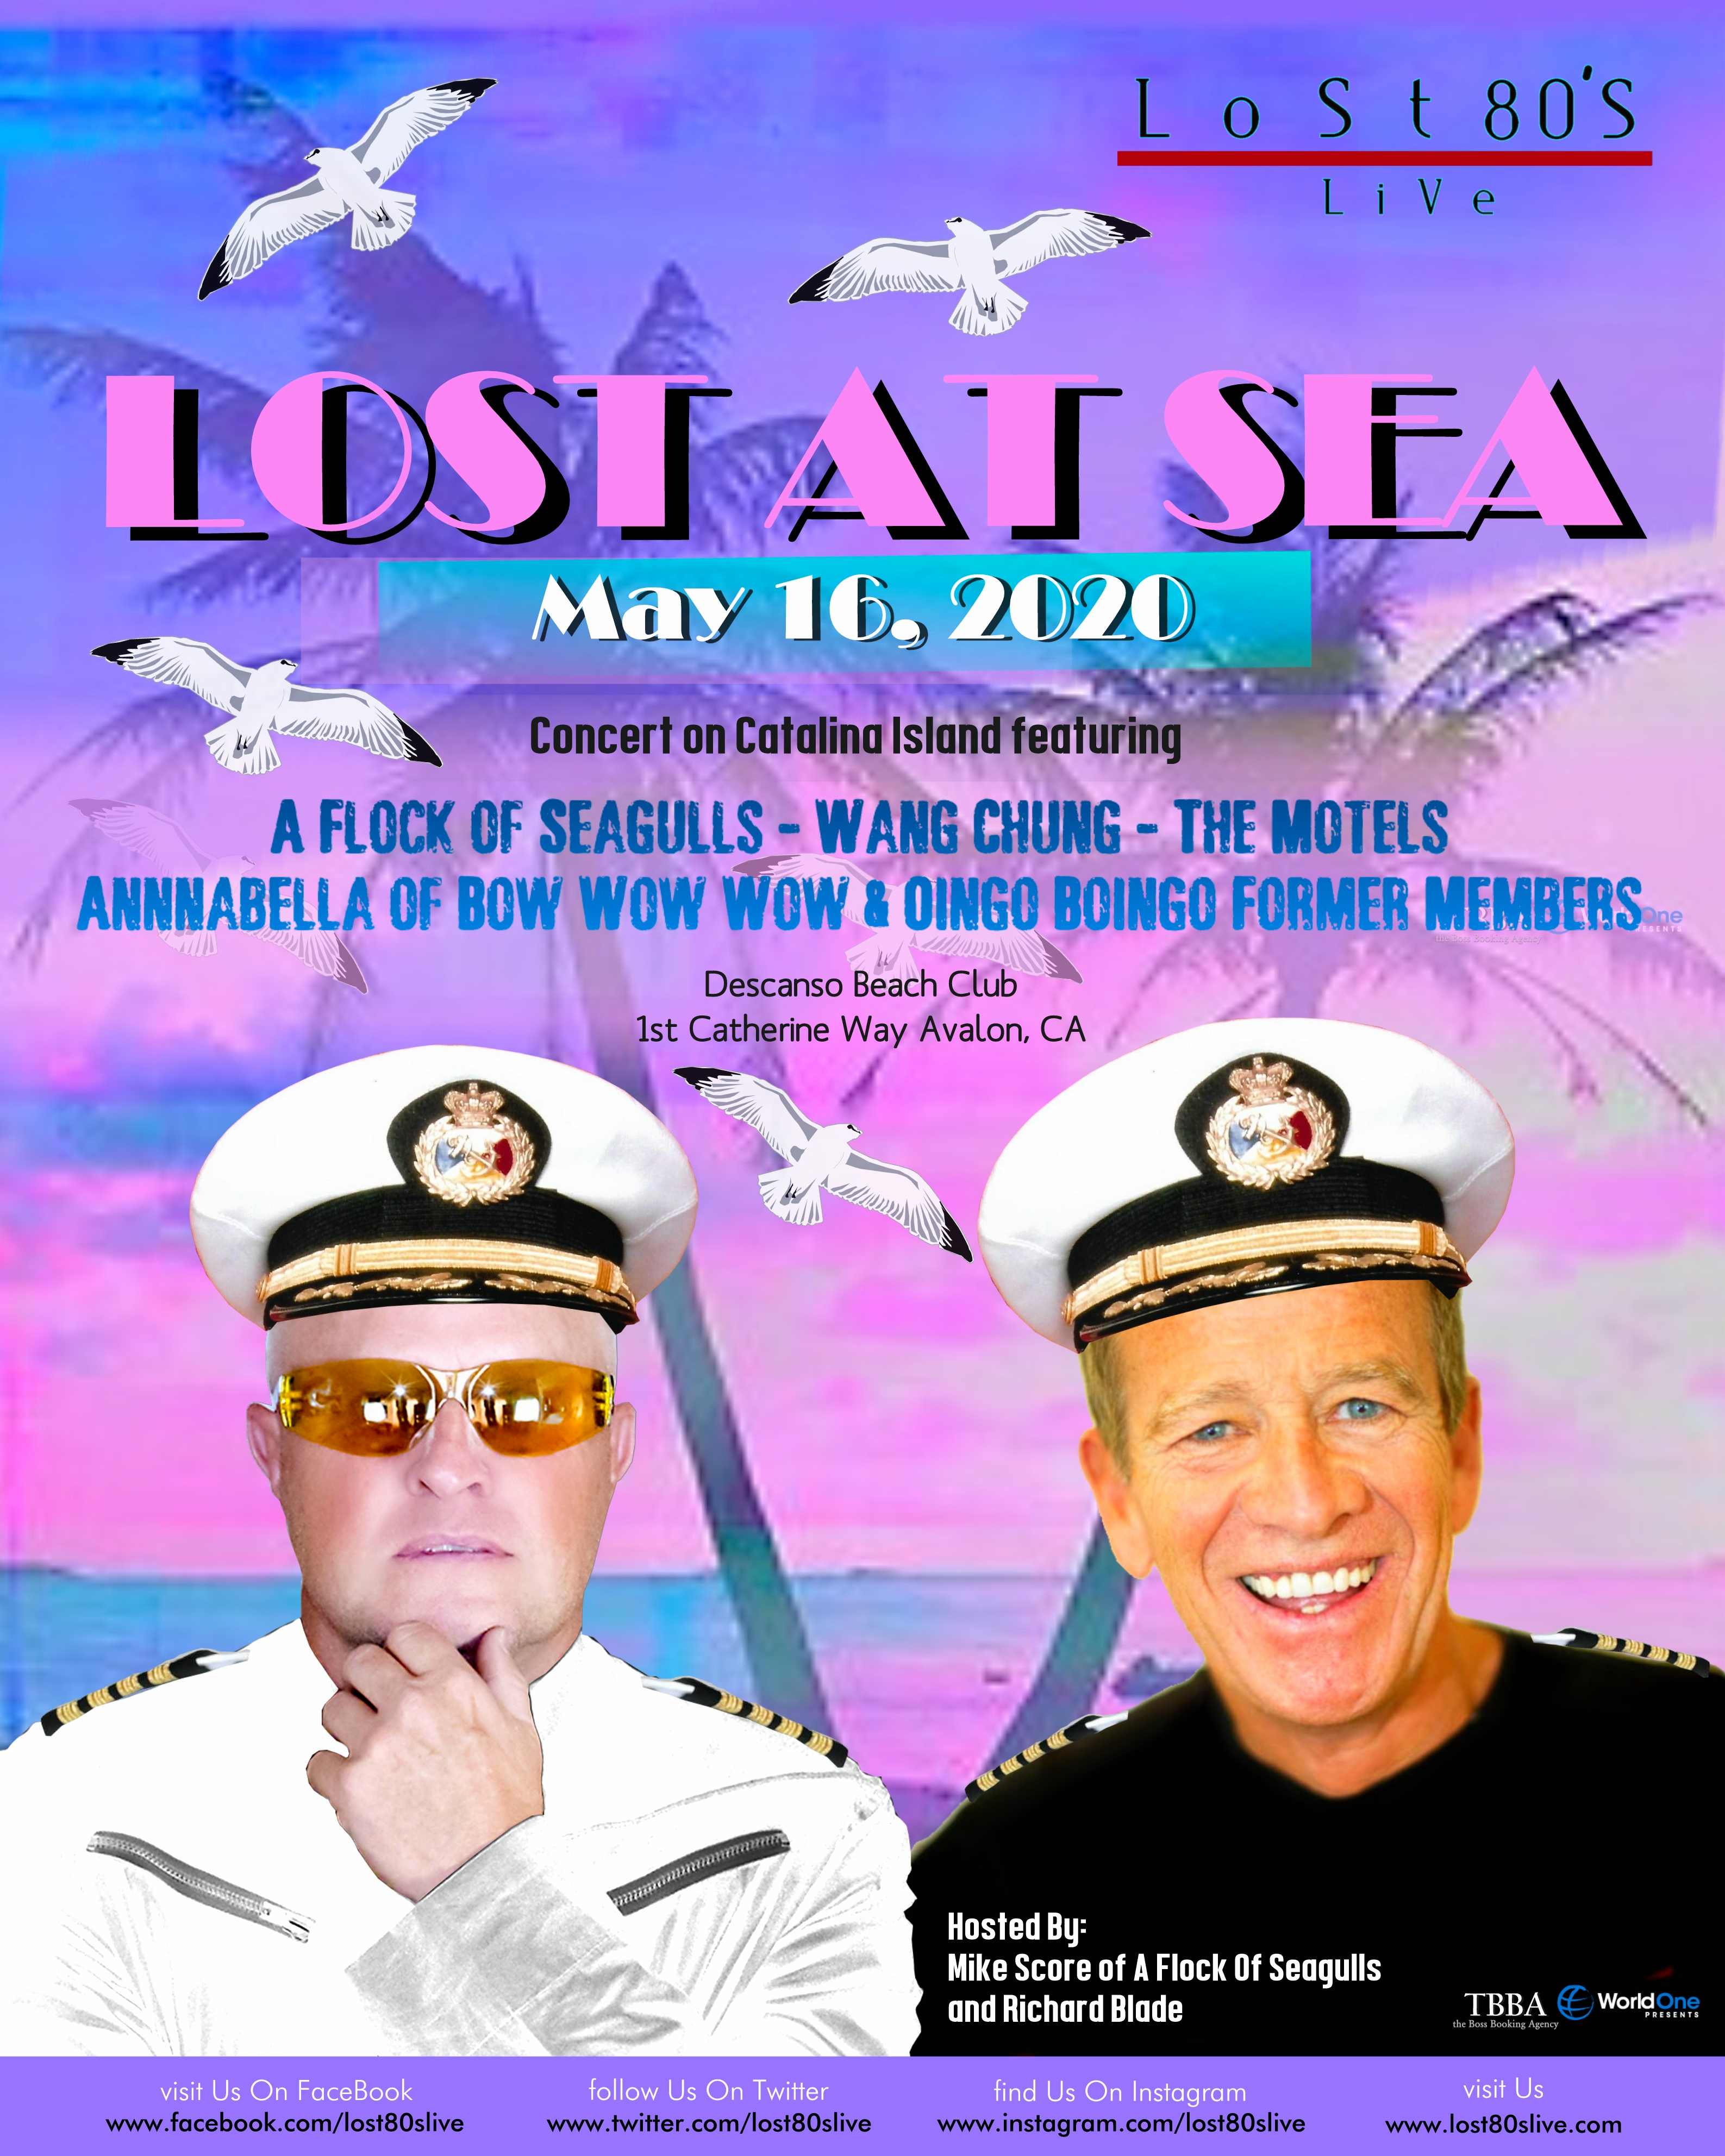 Best Beaches 2020 Lost 80's Live! Catalina Island Concert Cabana Upgrade For 10 May